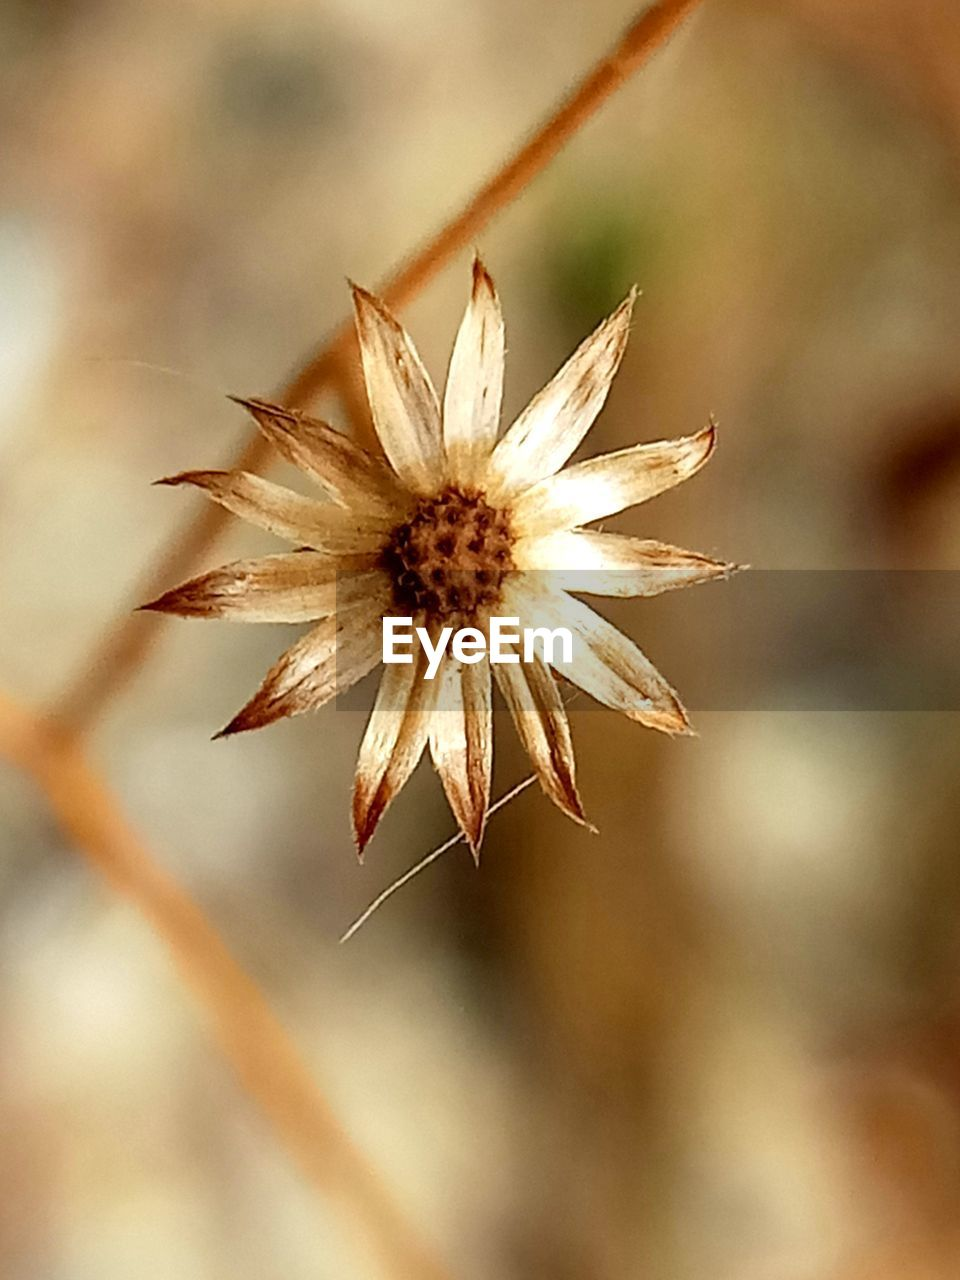 flower, nature, no people, growth, plant, close-up, fragility, flower head, outdoors, day, beauty in nature, freshness